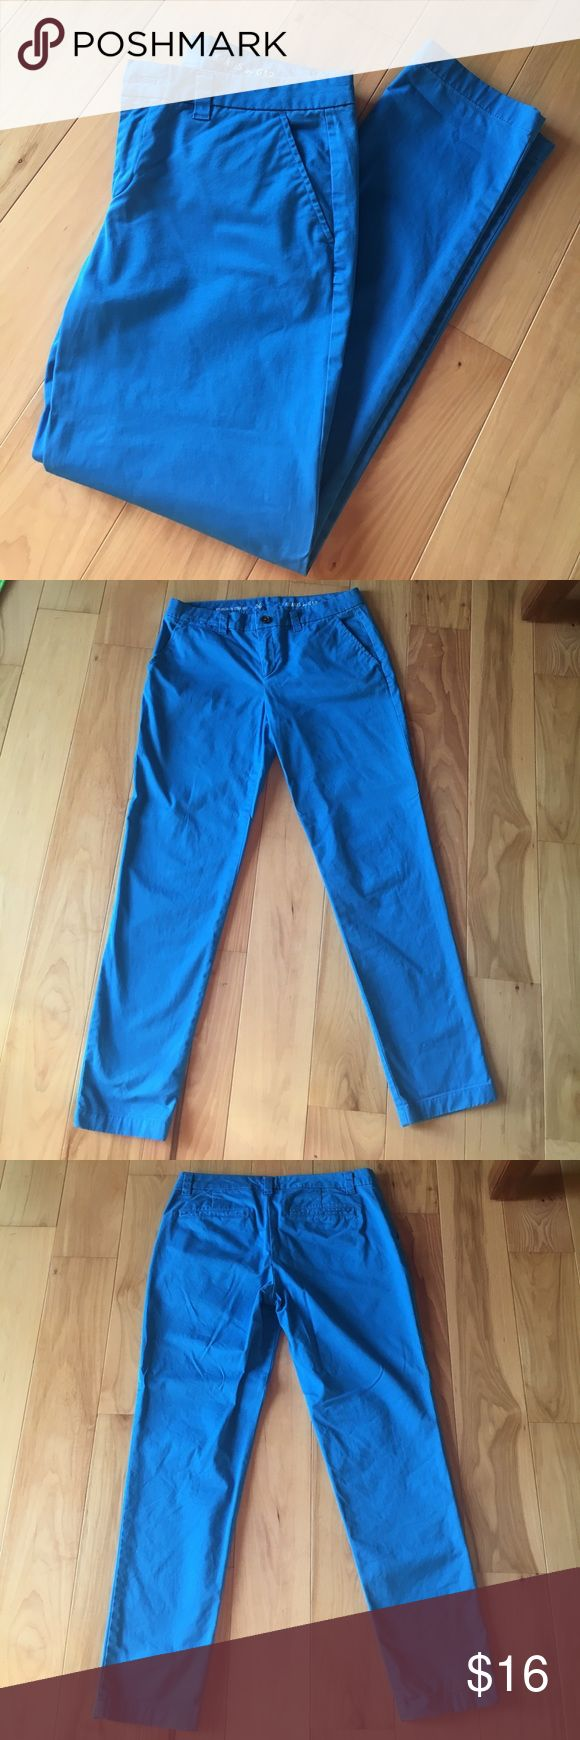 """Gap Broken-In Straight khakis in blue These khakis by Gap are a bright blue color.  There is one tiny stain, as shown in the last 2 pictures.  Inseam is just under 29"""".  Look great rolled up as capris too!  In great used condition.  From smoke and pet free home. GAP Pants Straight Leg"""